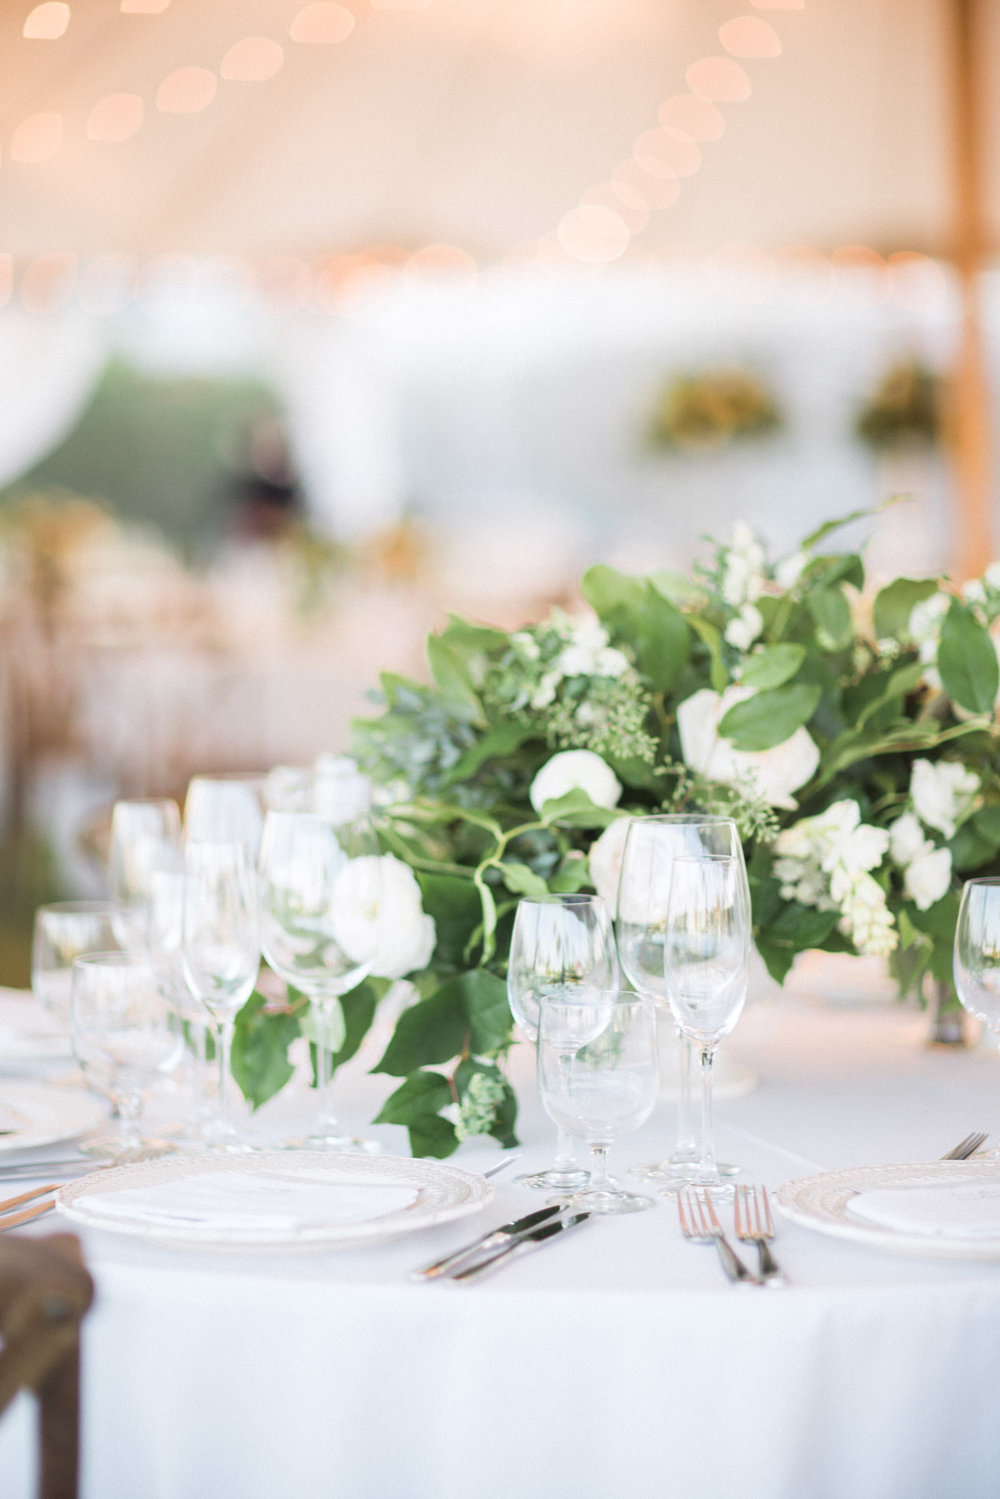 Greenery centerpiece at wedding reception